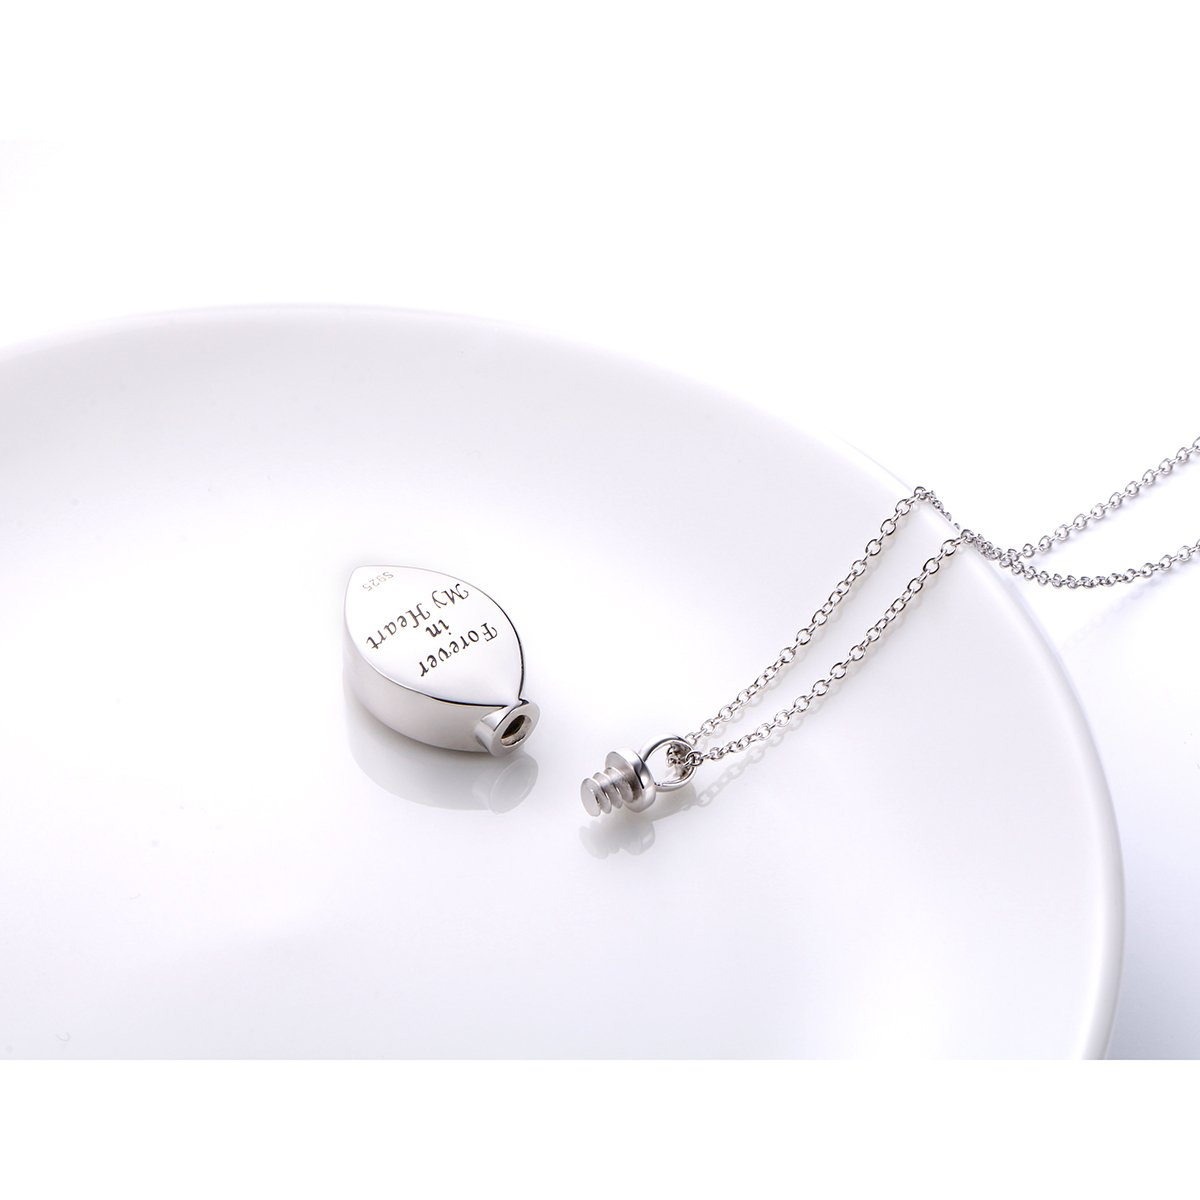 SILVER MOUNTAIN 925 Sterling Silver Cremation Jewelry Forever in My Heart Ashes Keepsake Urns Pendant Necklace 20